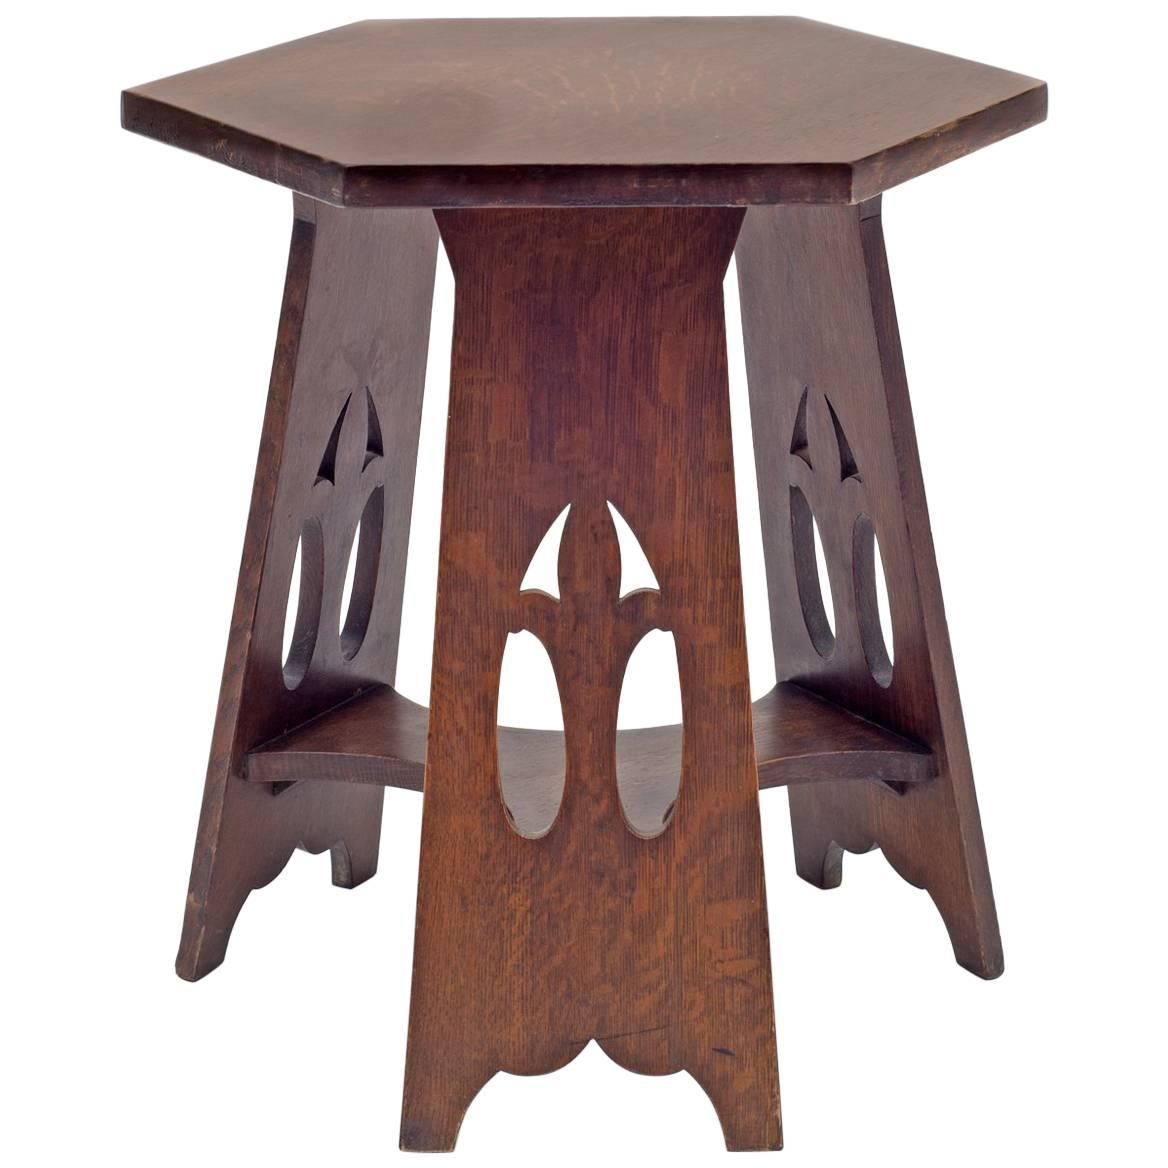 Delightful Stickley Brothers Quaint Furniture Co. Hexagonal Oak Taboret Table, USA,  1900s 1